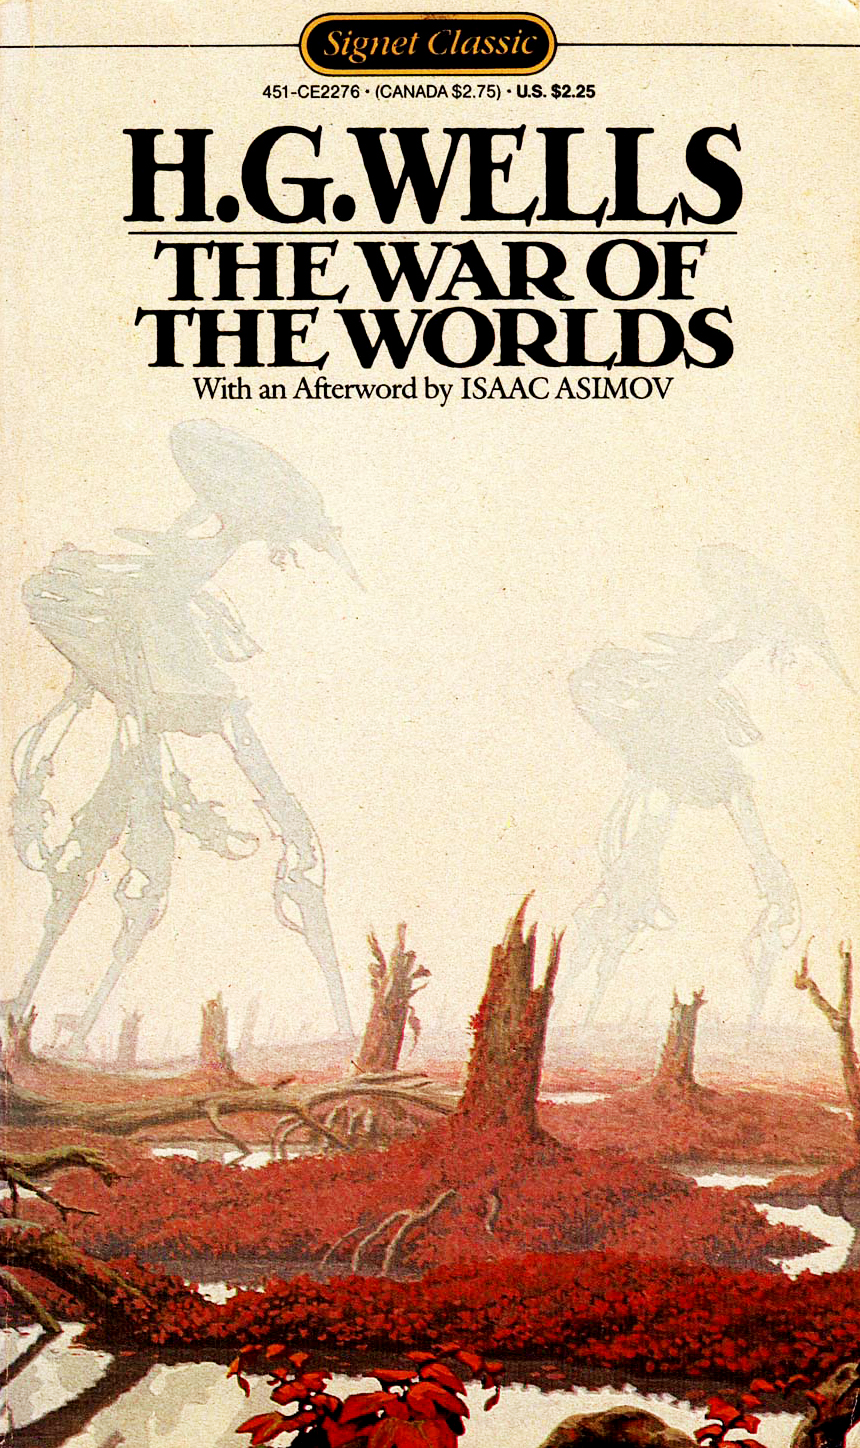 hg wells the war of the worlds The war of the worlds is a science fiction novel by hg wells, which was first published in 1897 as a serialisation in pearson's magazine in the uk and cosmopolitan in the us.